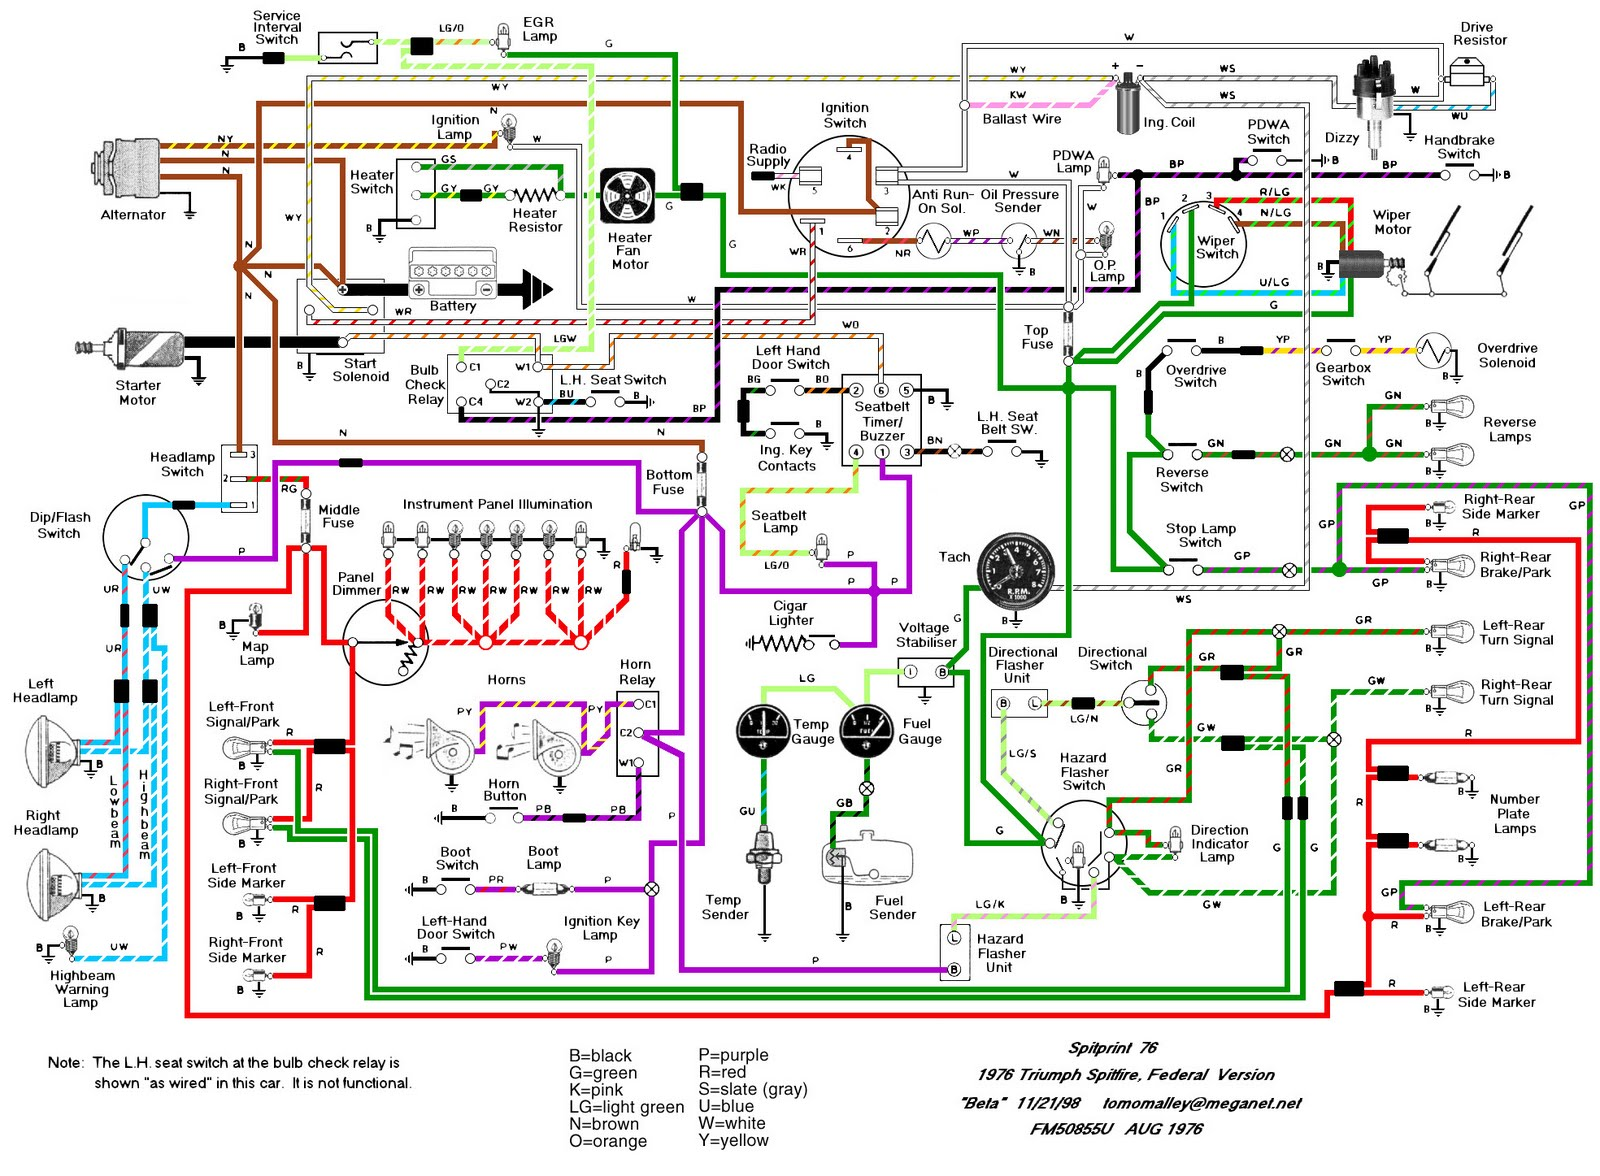 1980 Mini Cooper Wiring Diagram on 2007 mitsubishi eclipse radio wiring harness diagram